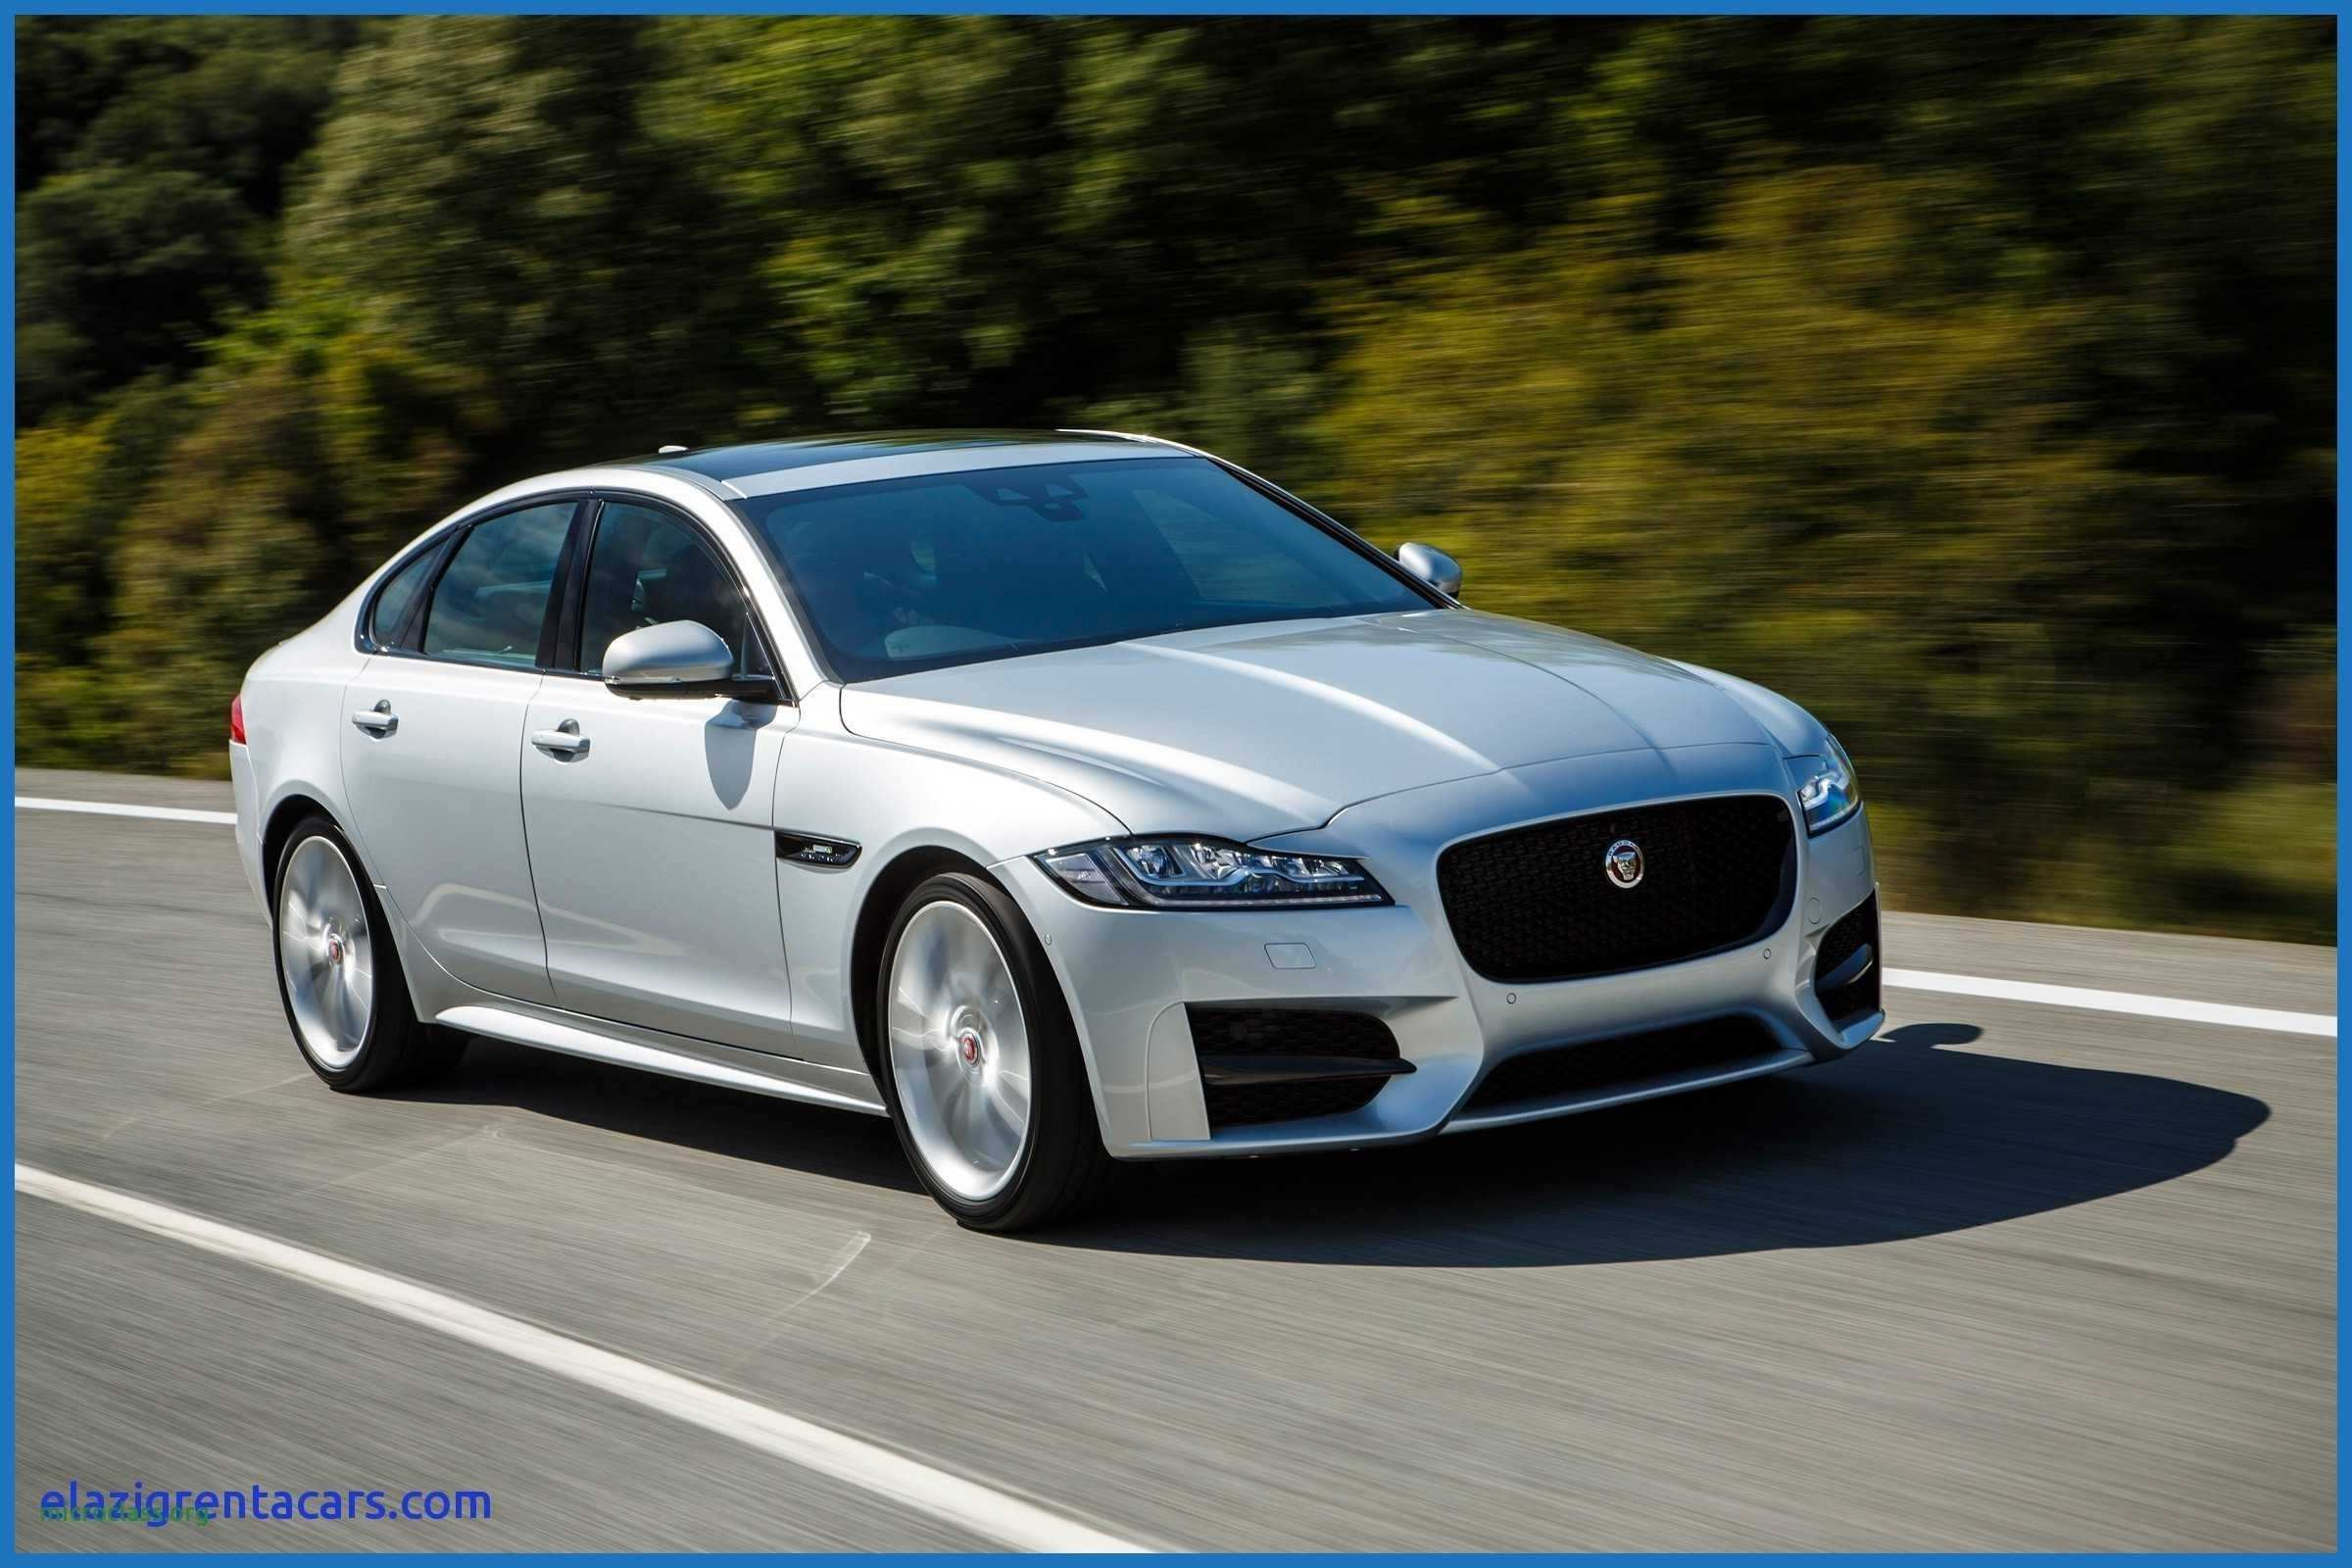 45 New 2019 Jaguar Cost Specs Research New for 2019 Jaguar Cost Specs